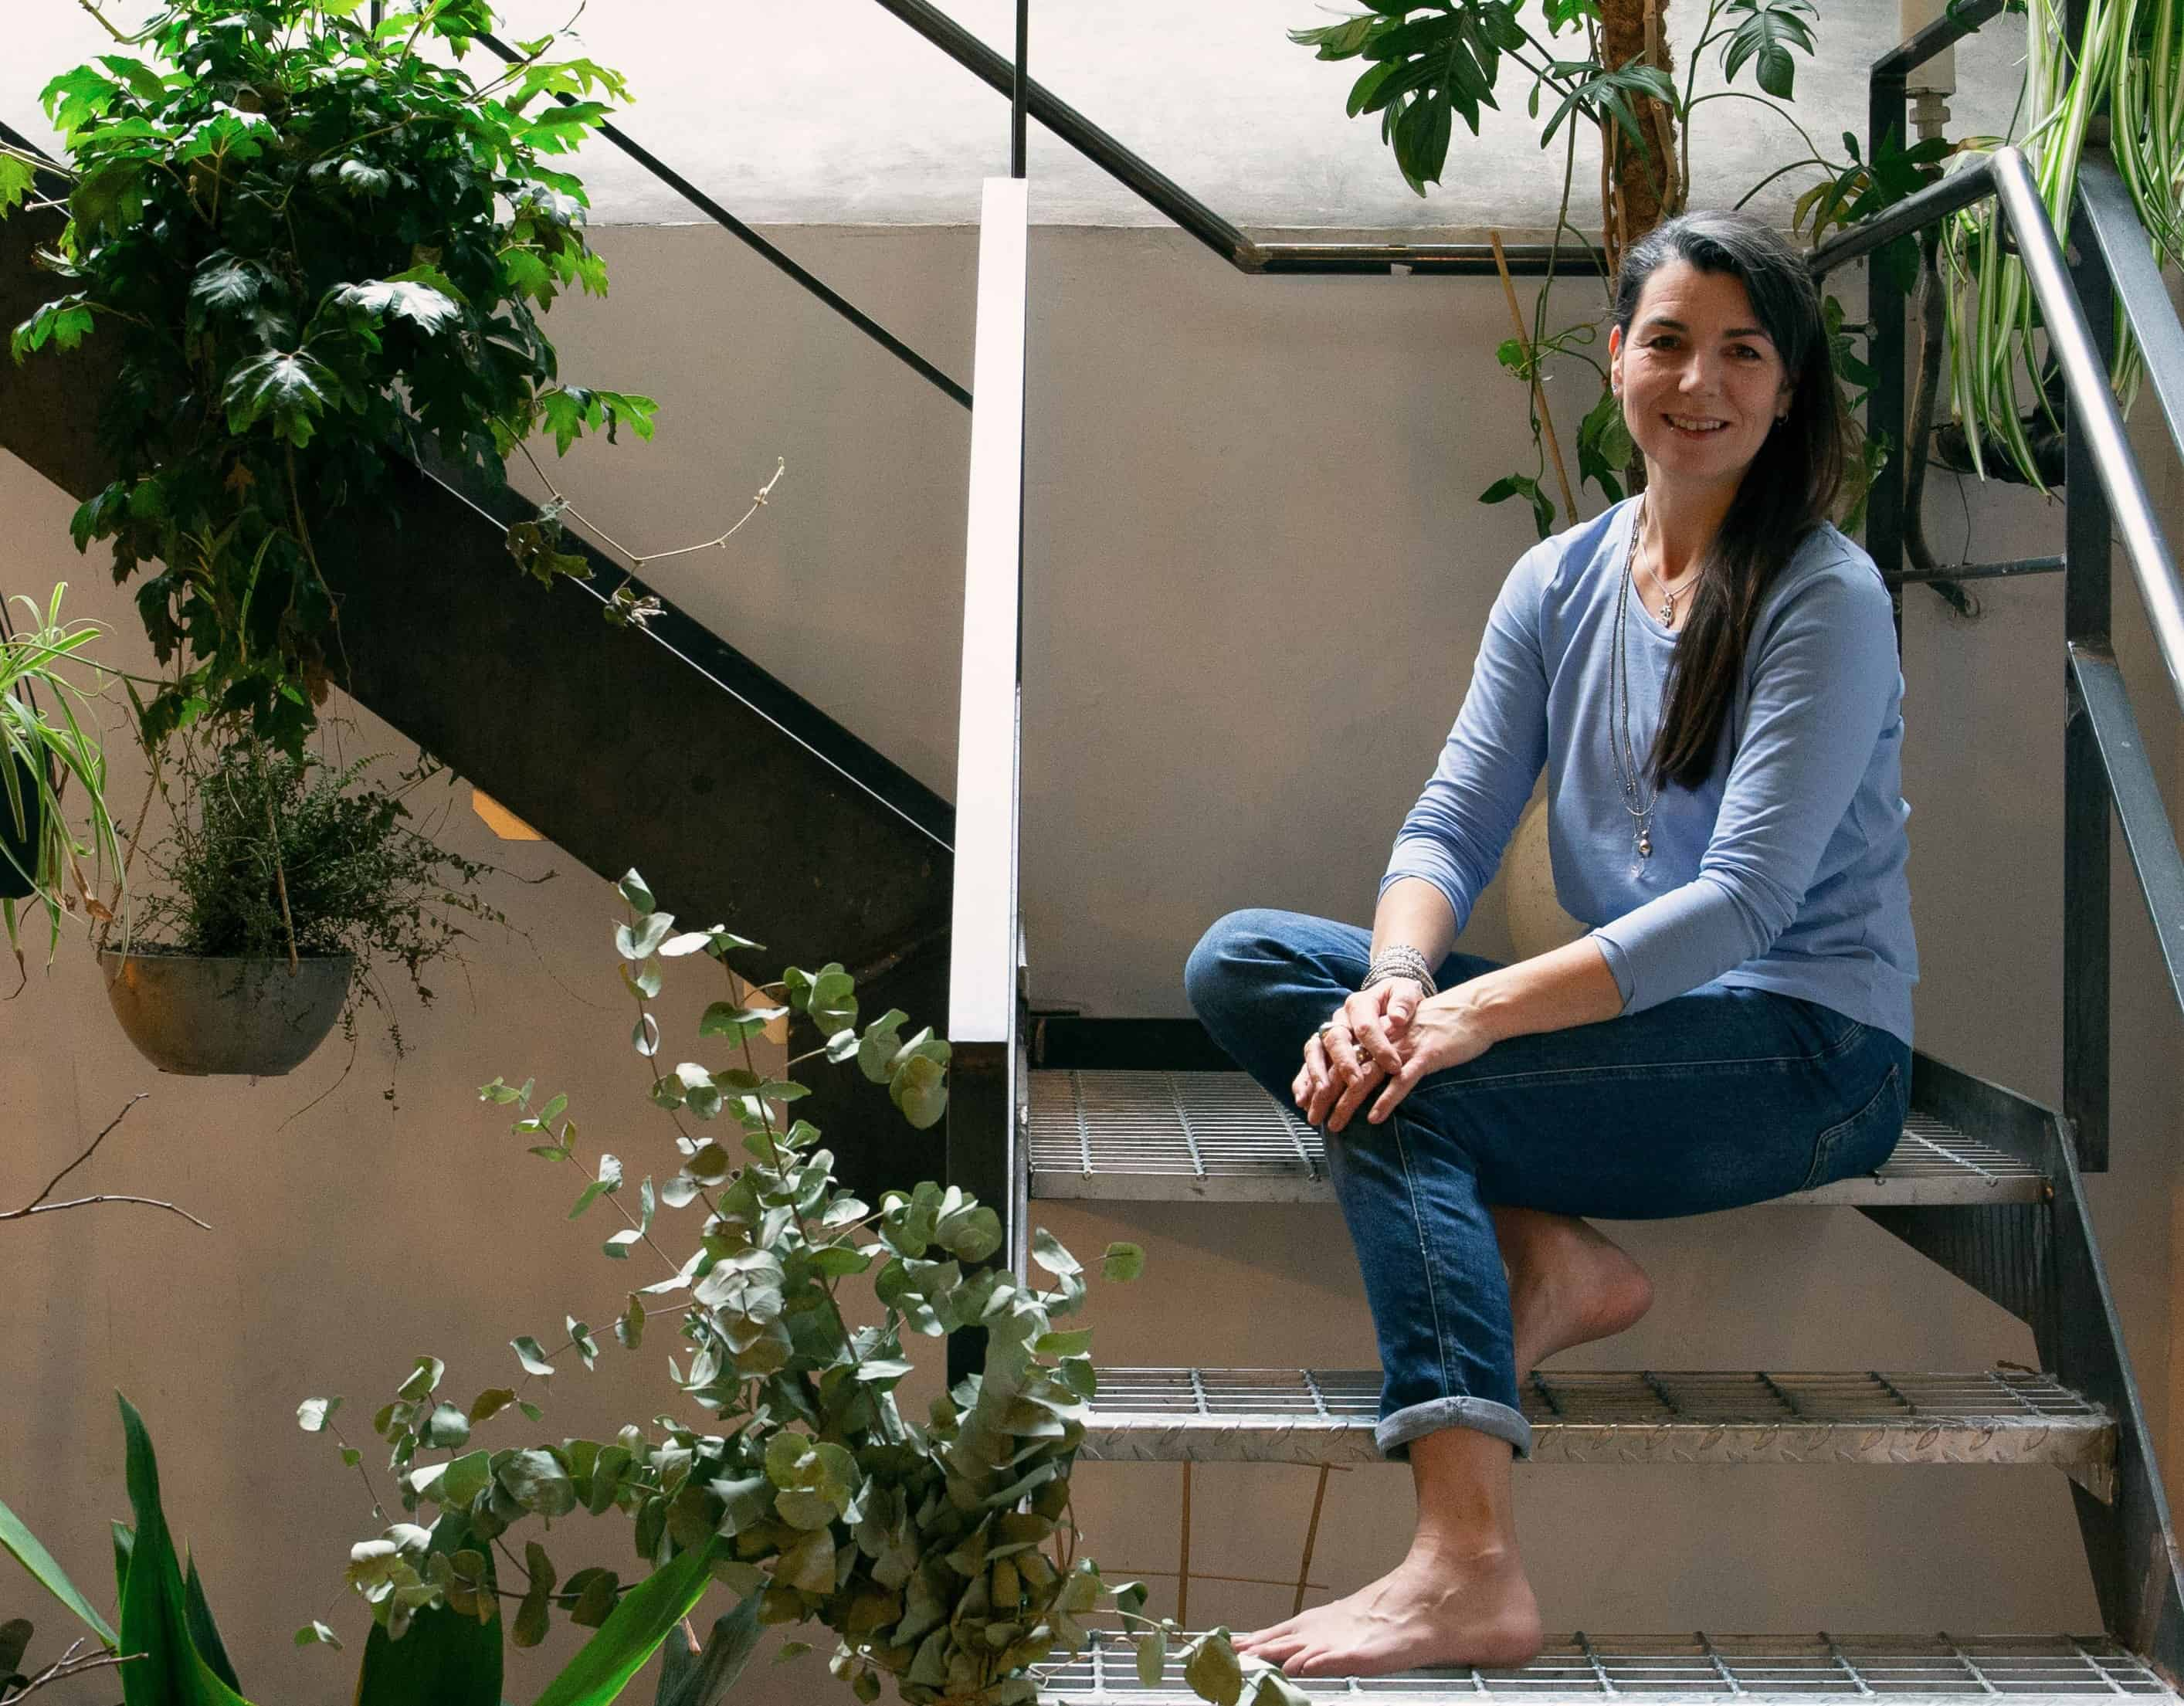 Deborah sitting on stairs with plants